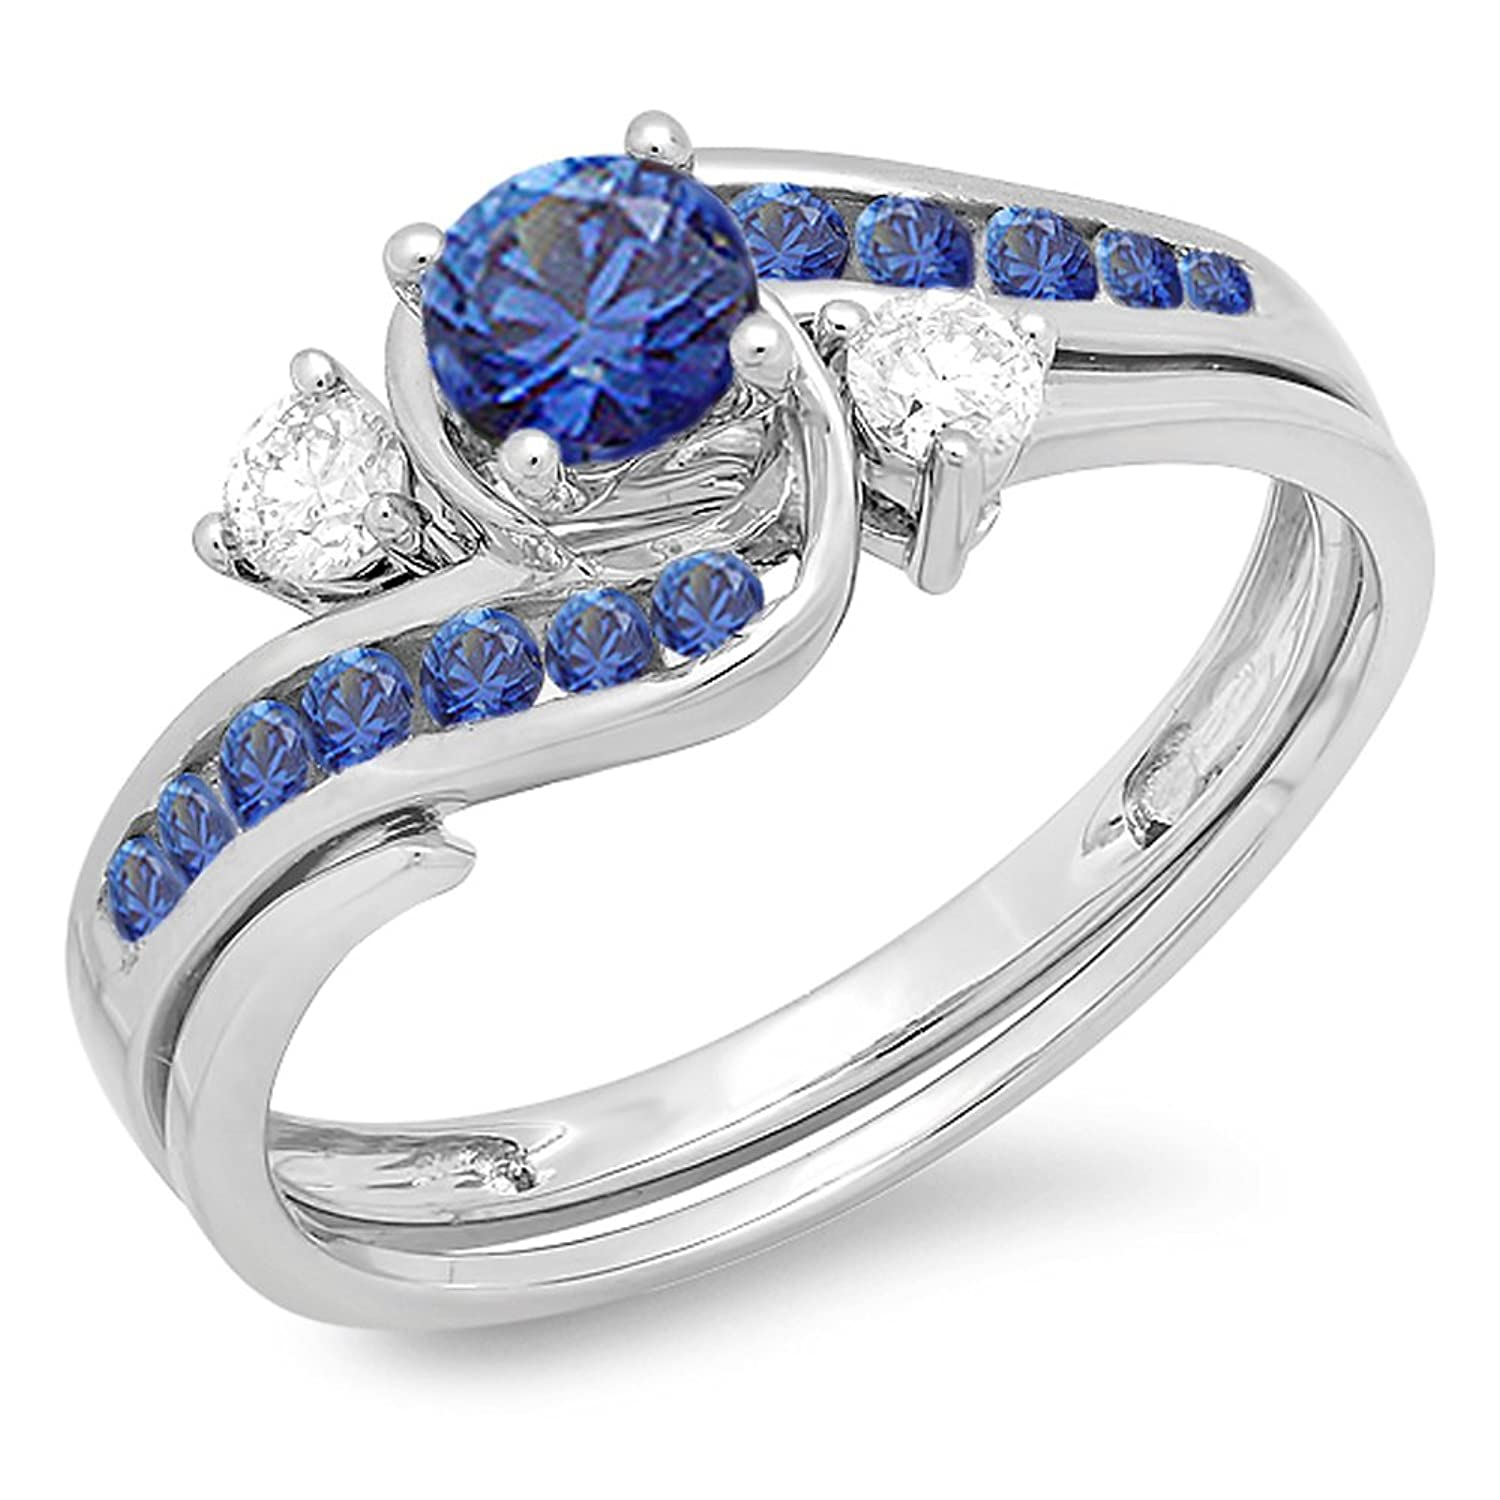 set band princess ring p white sapphire art blue caravagio masters wedding caravaggio product ct engagement diamond gold